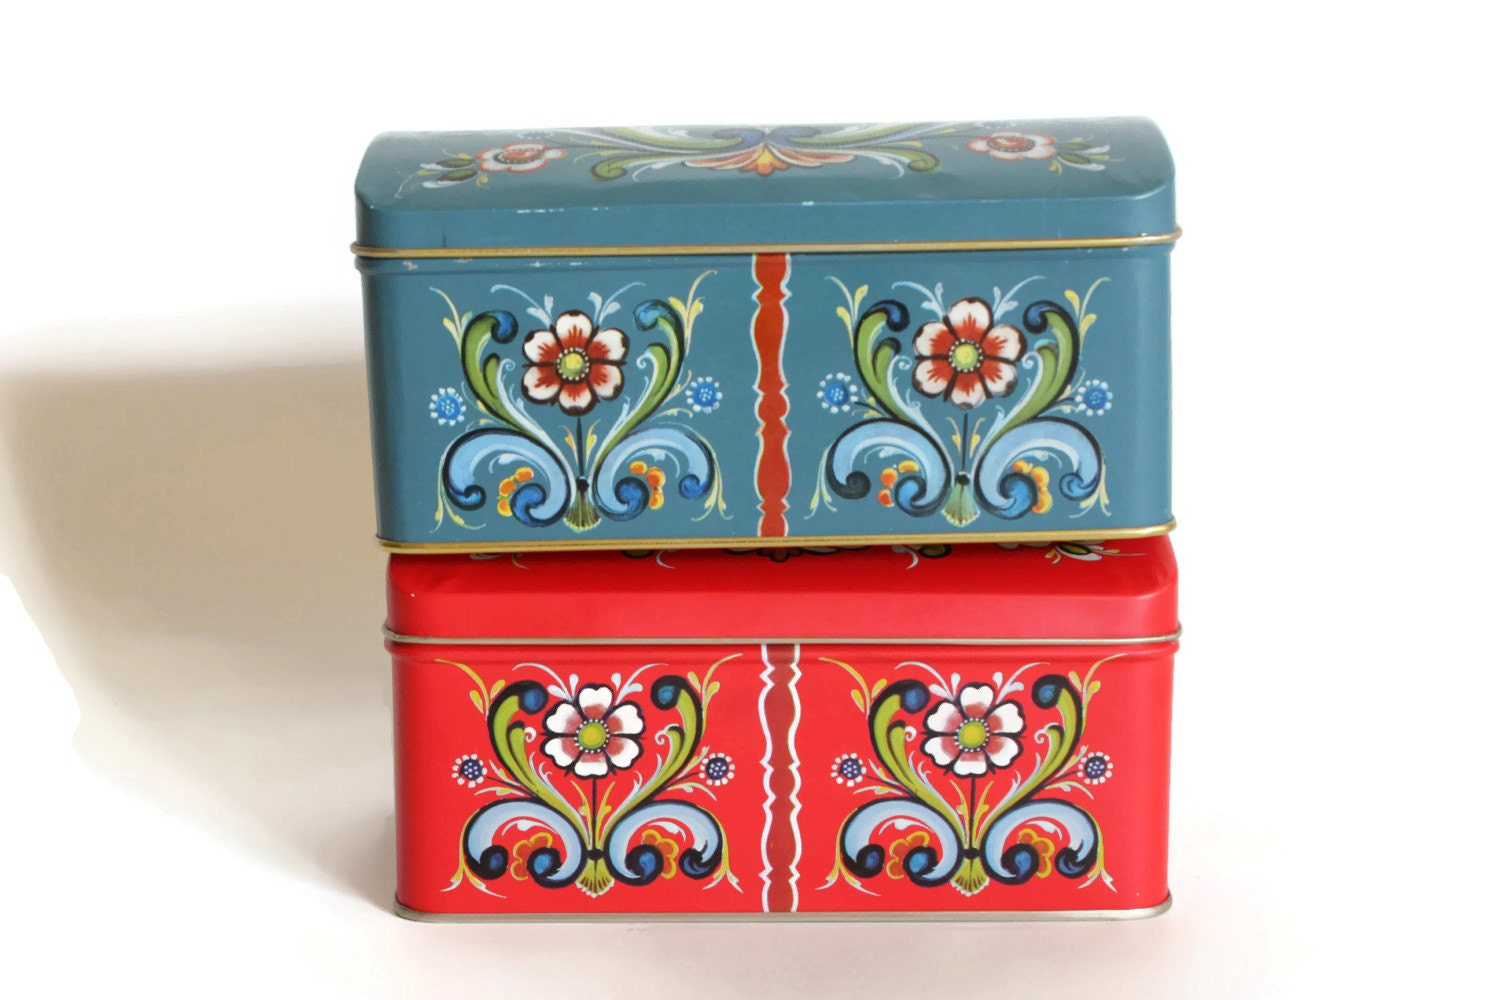 Rosemaled Norwegian Tin Boxes Made in Norway Hinged Lids